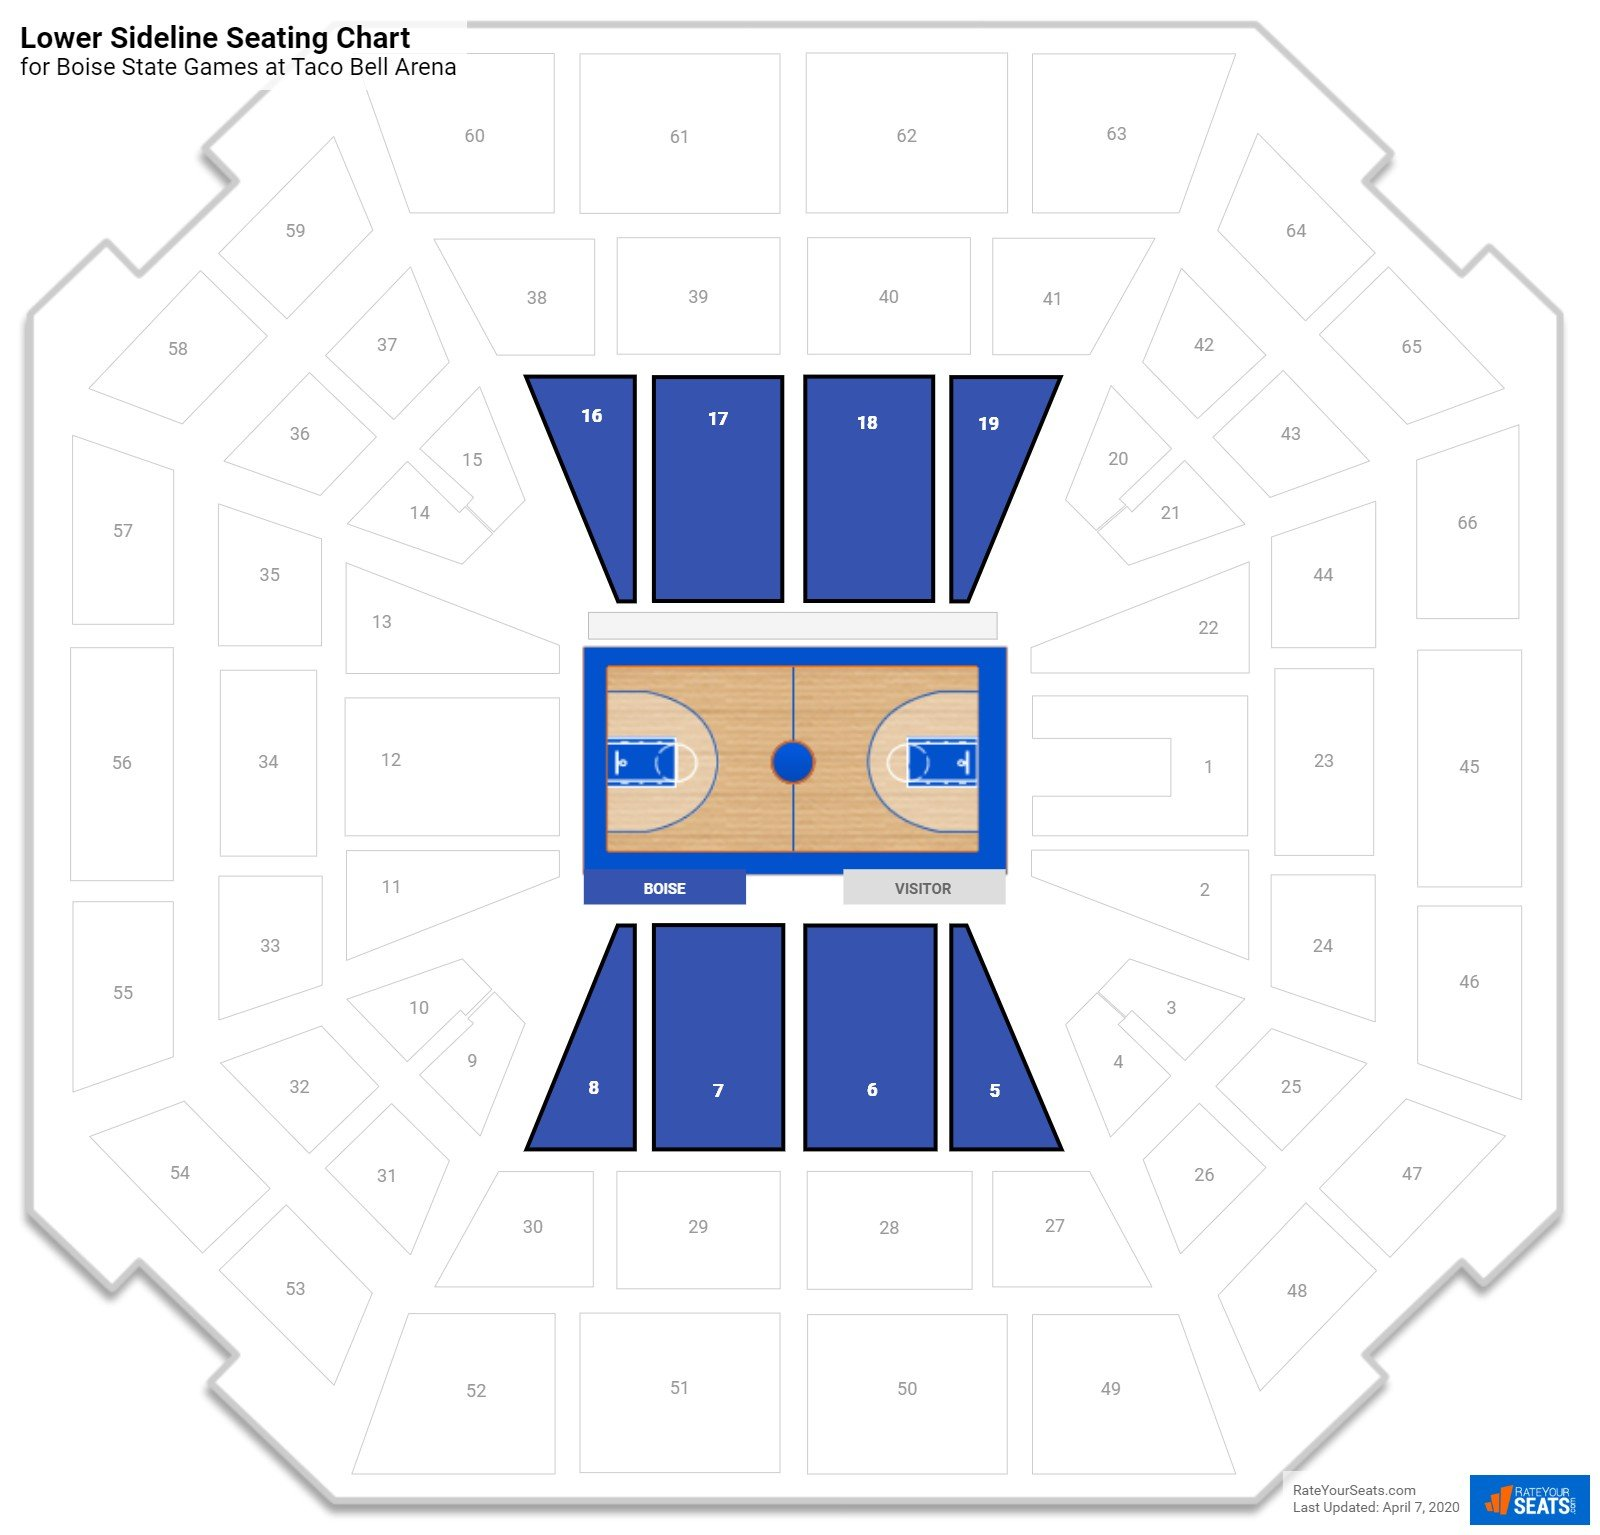 unlv interactive seating chart: Taco bell arena boise state seating guide rateyourseats com